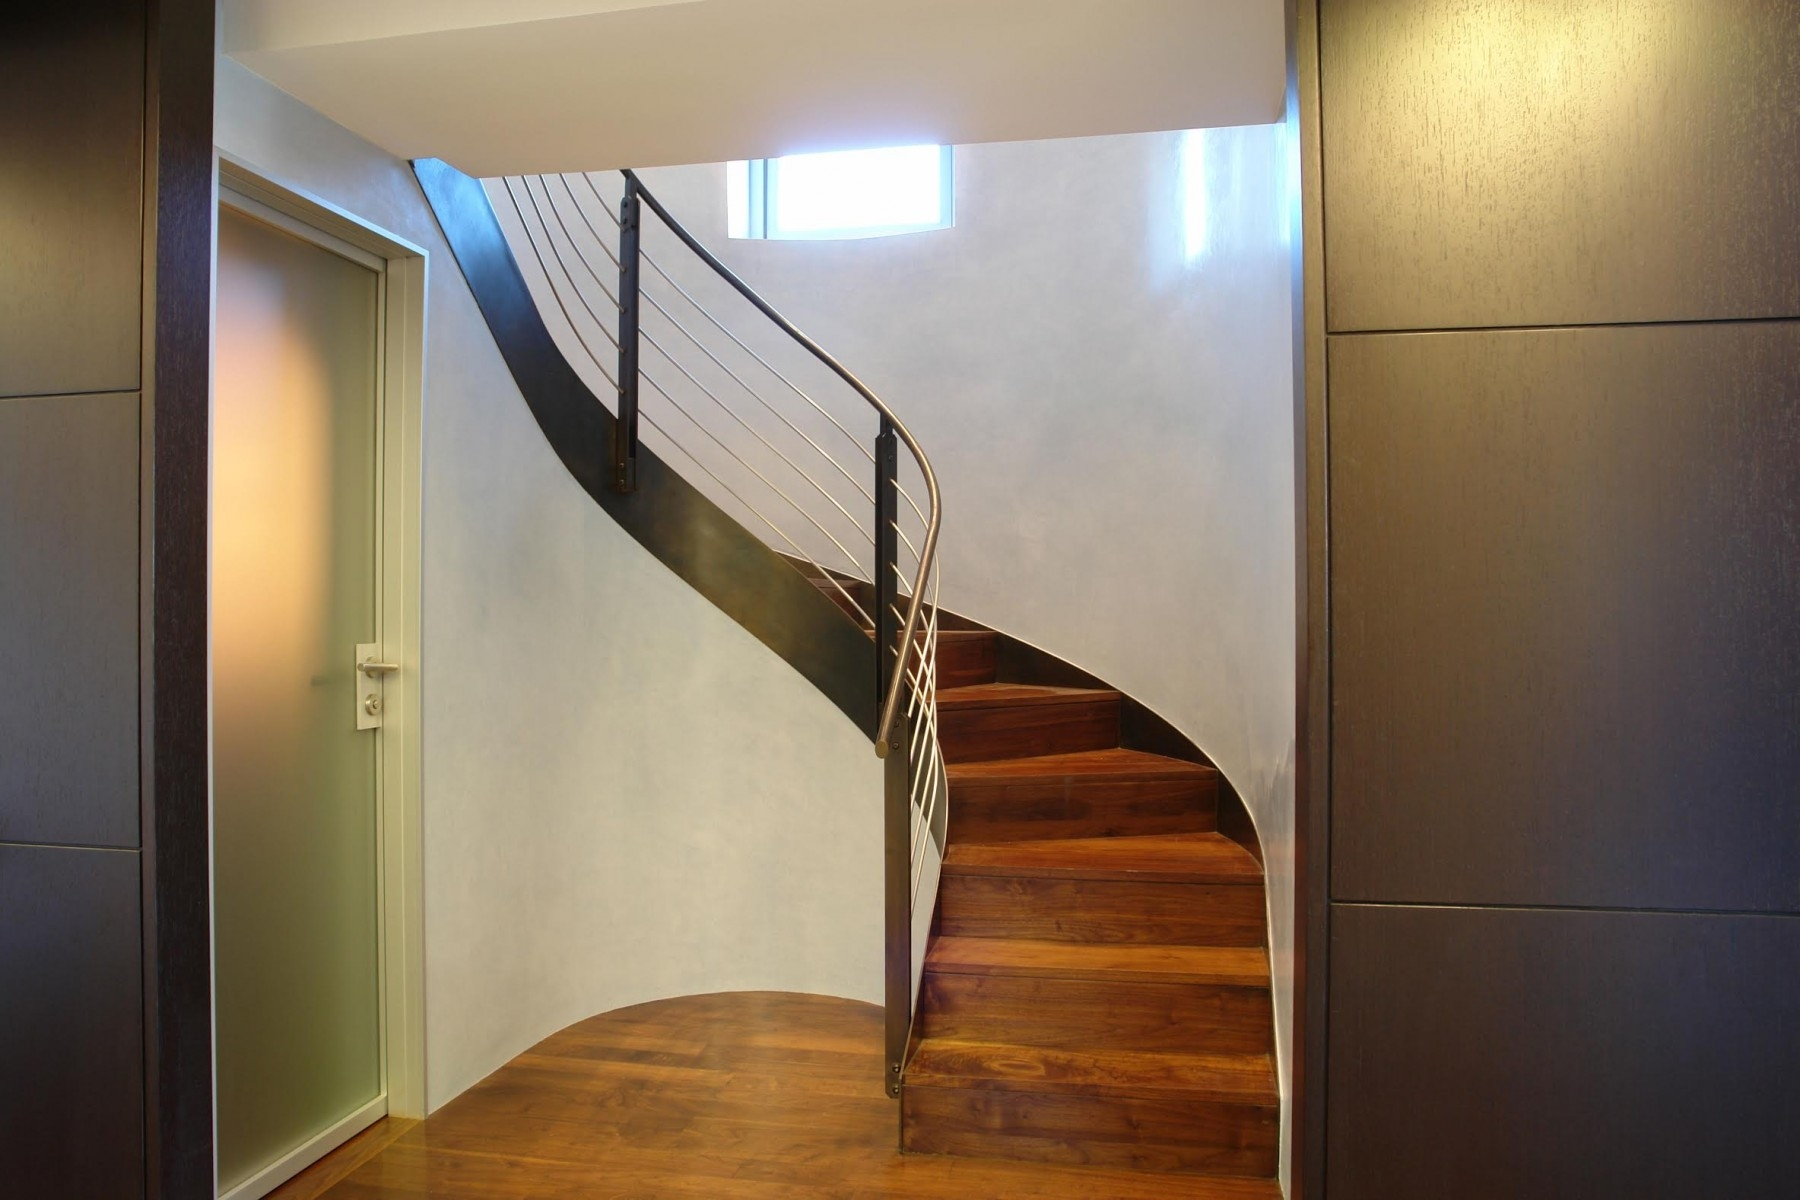 Spiral Staircase Alternatives For Your Nyc Duplex Renovation | Wooden Spiral Staircase For Sale | 3 Floor | Twist | Wrought Iron | 36 Inch Diameter | Free Standing